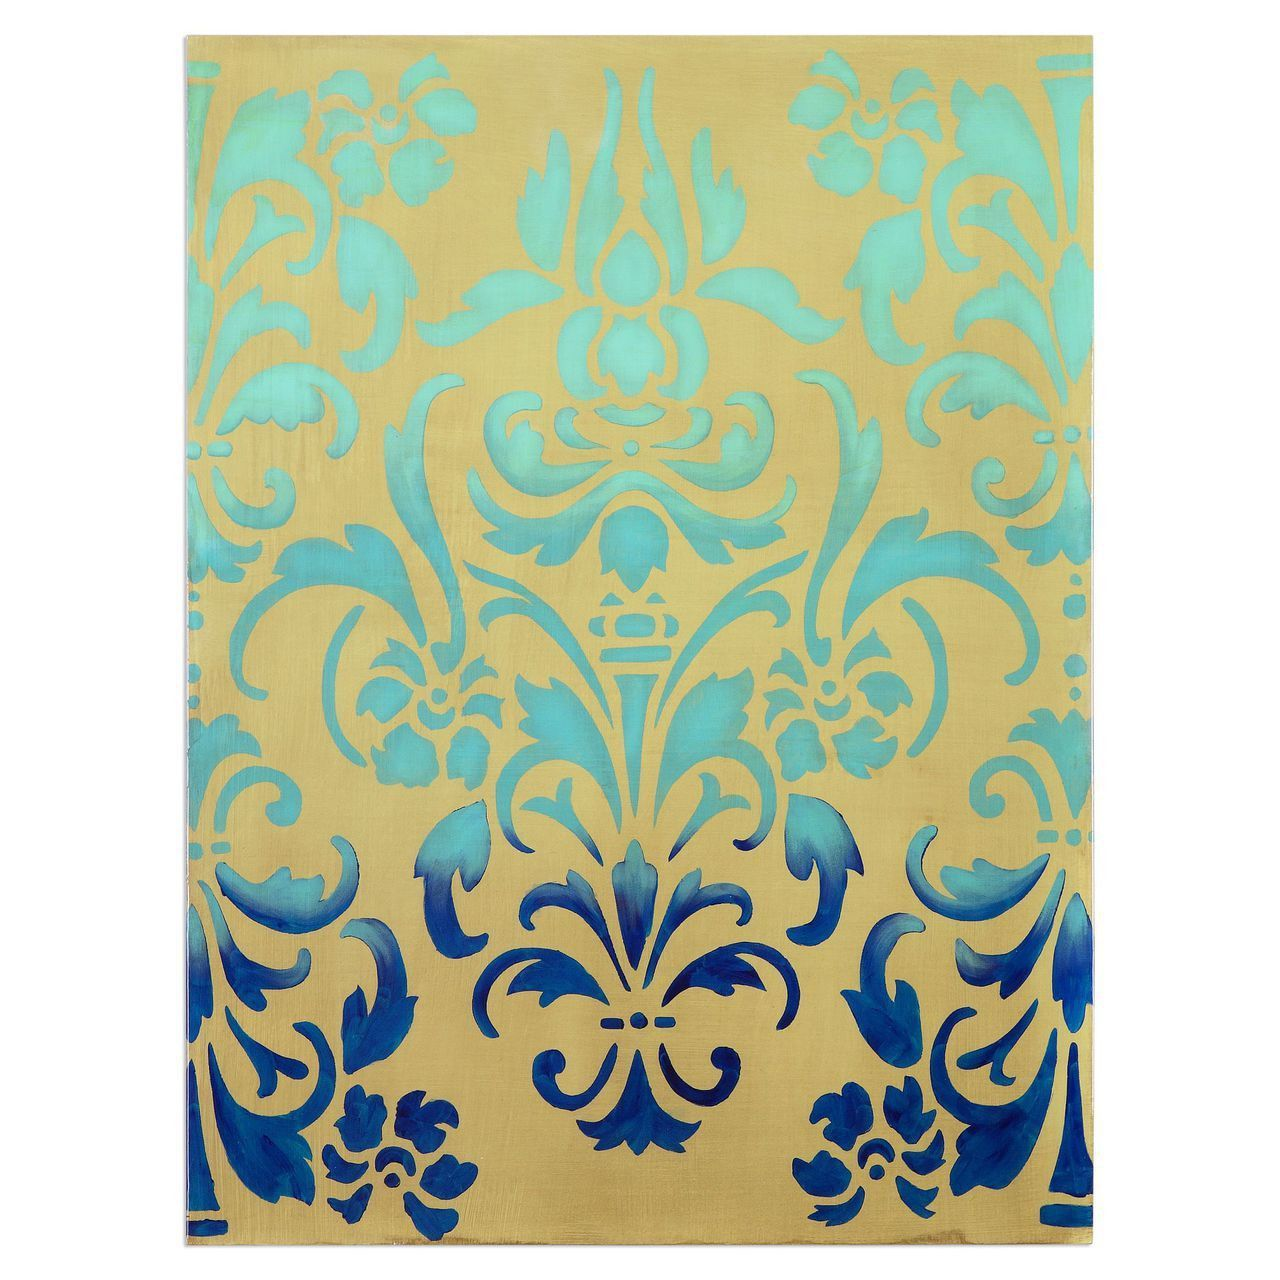 Uttermost Blue Ombre Stencil Art | Products | Pinterest | Blue ombre ...